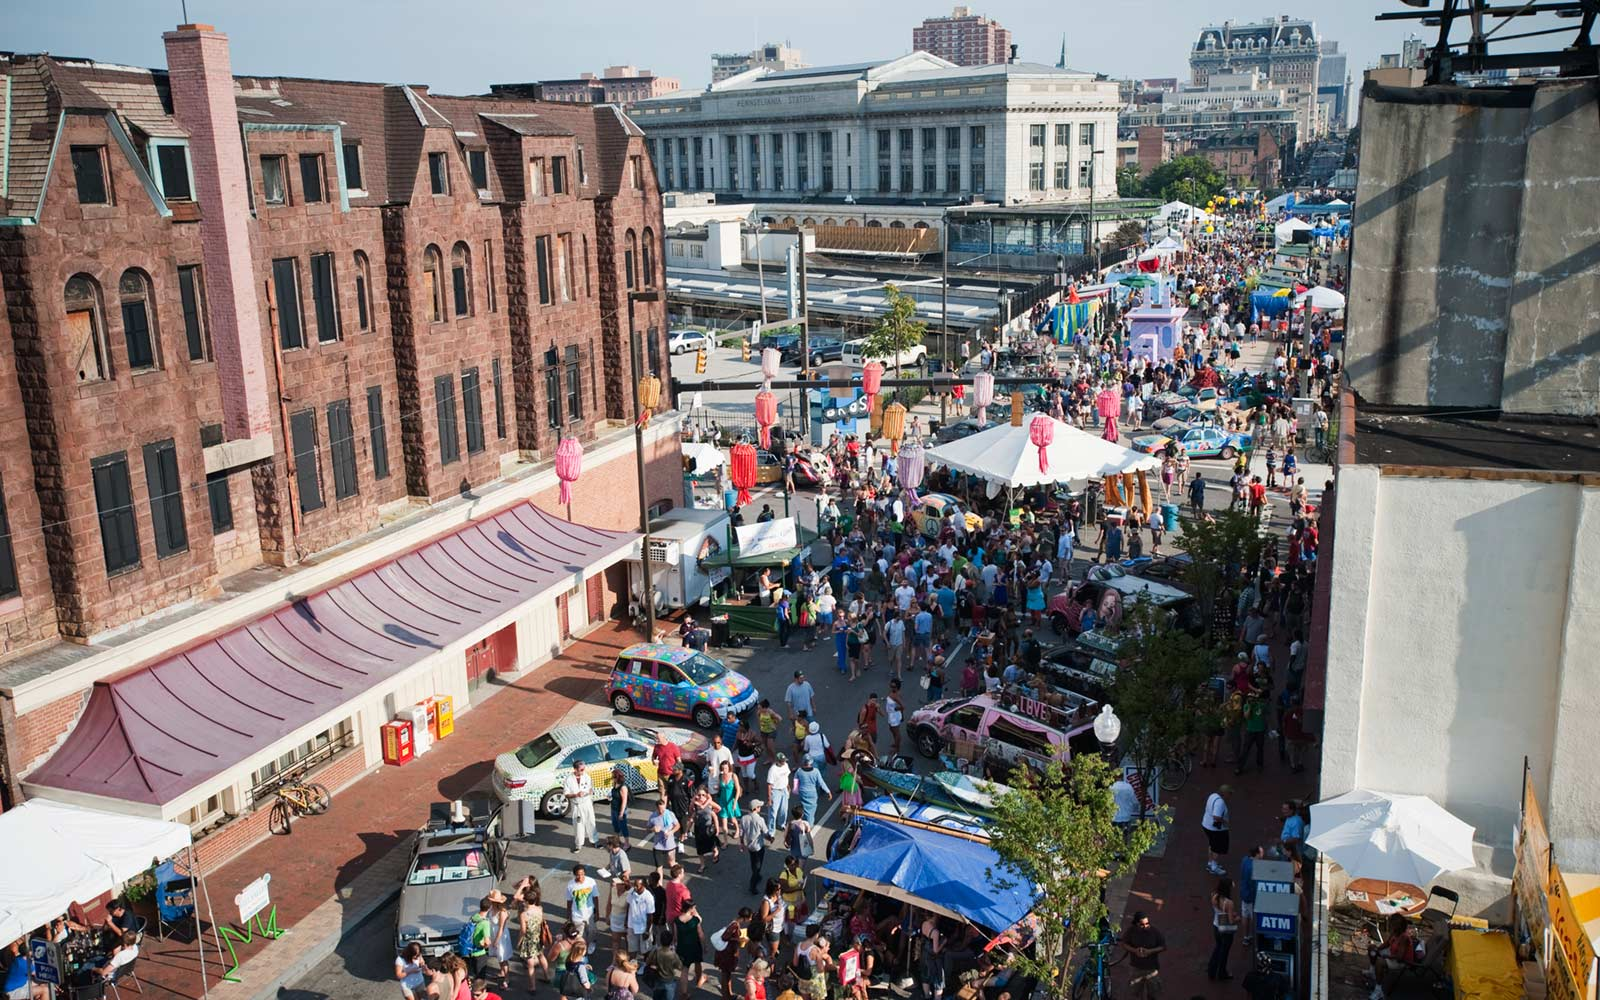 Artscape Arts Festival, Baltimore Maryland